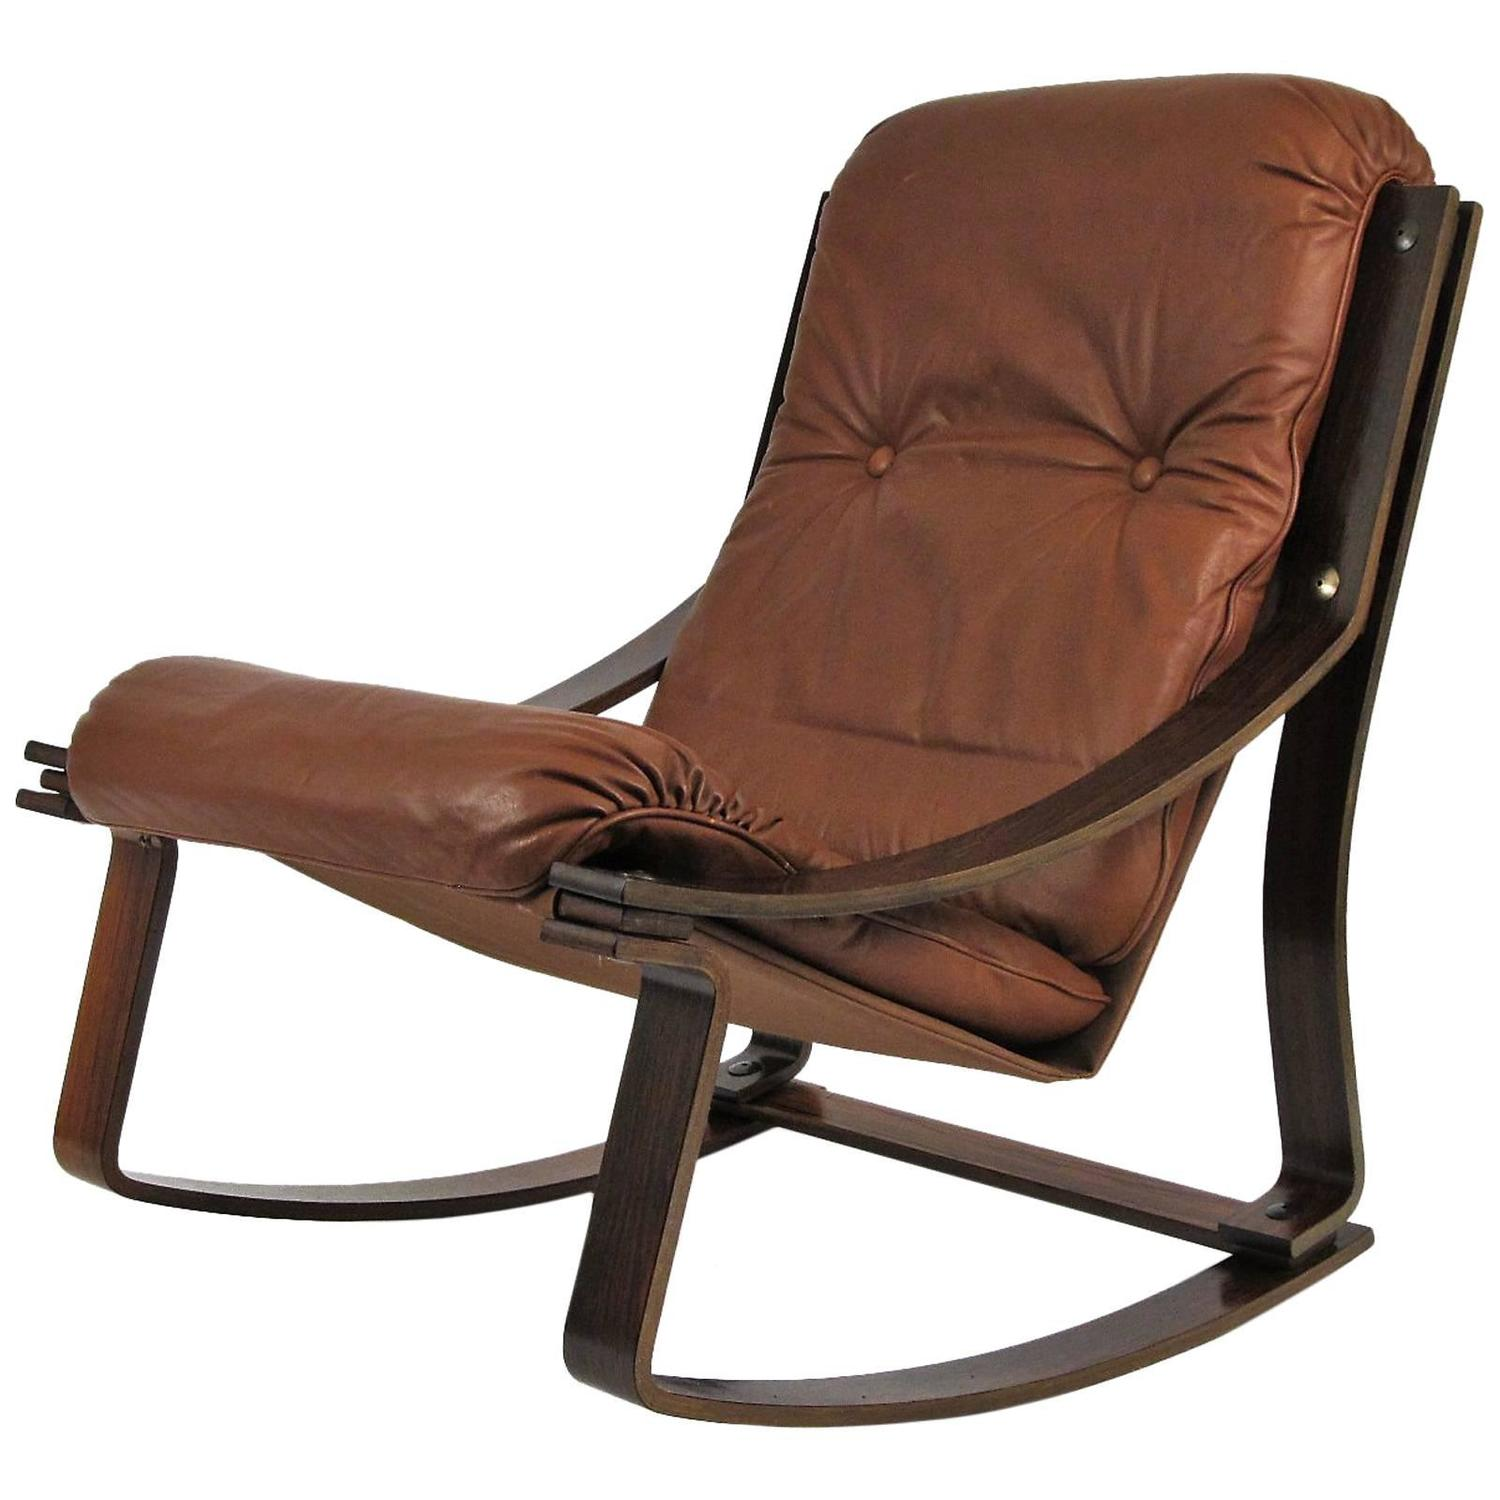 Rosewood and leather westnofa norwegian rocking chair at